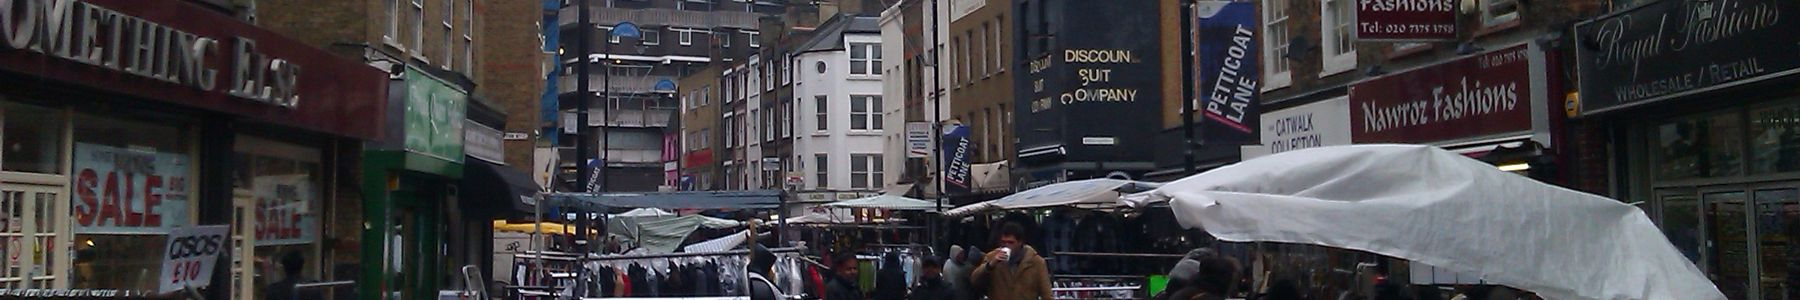 Friday Lunchtime at Petticoat Lane